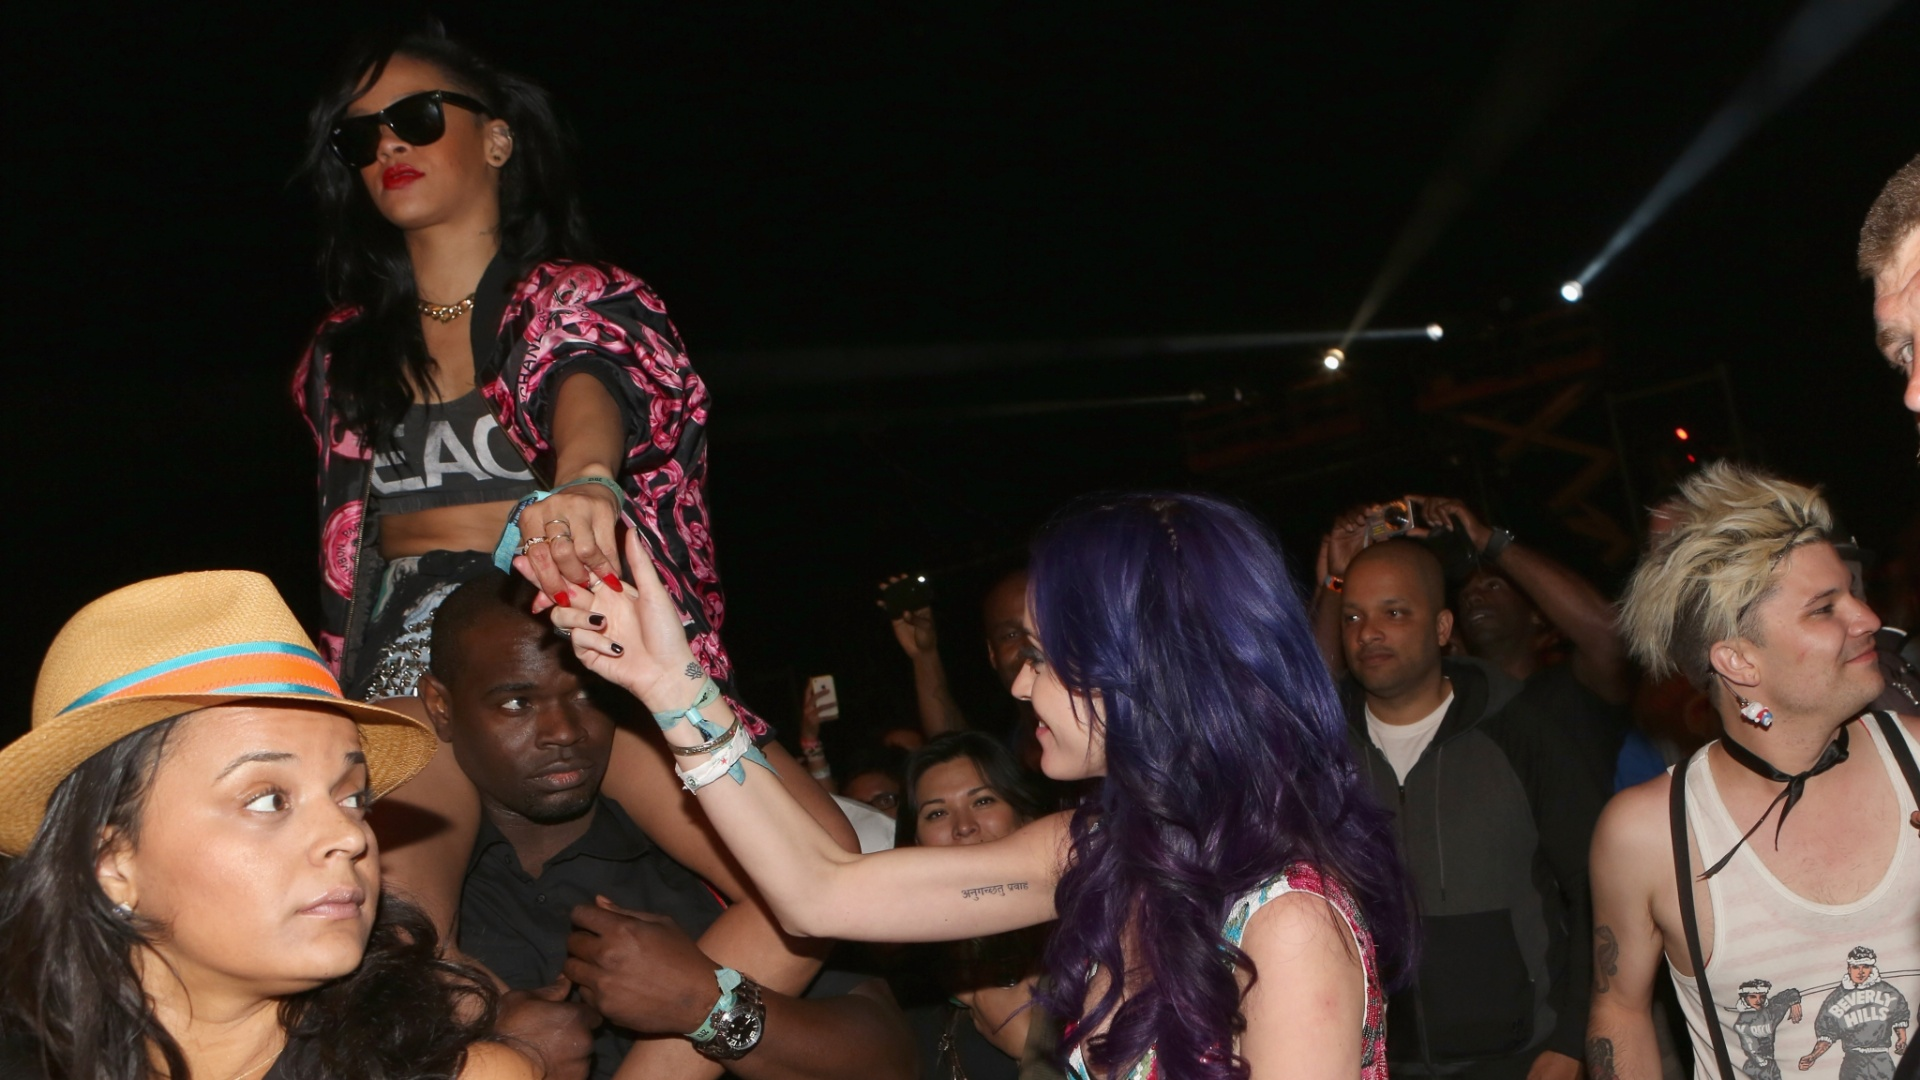 Na plateia, Rihanna e Katy Perry se divertem no festival Coachella (15/4/12)